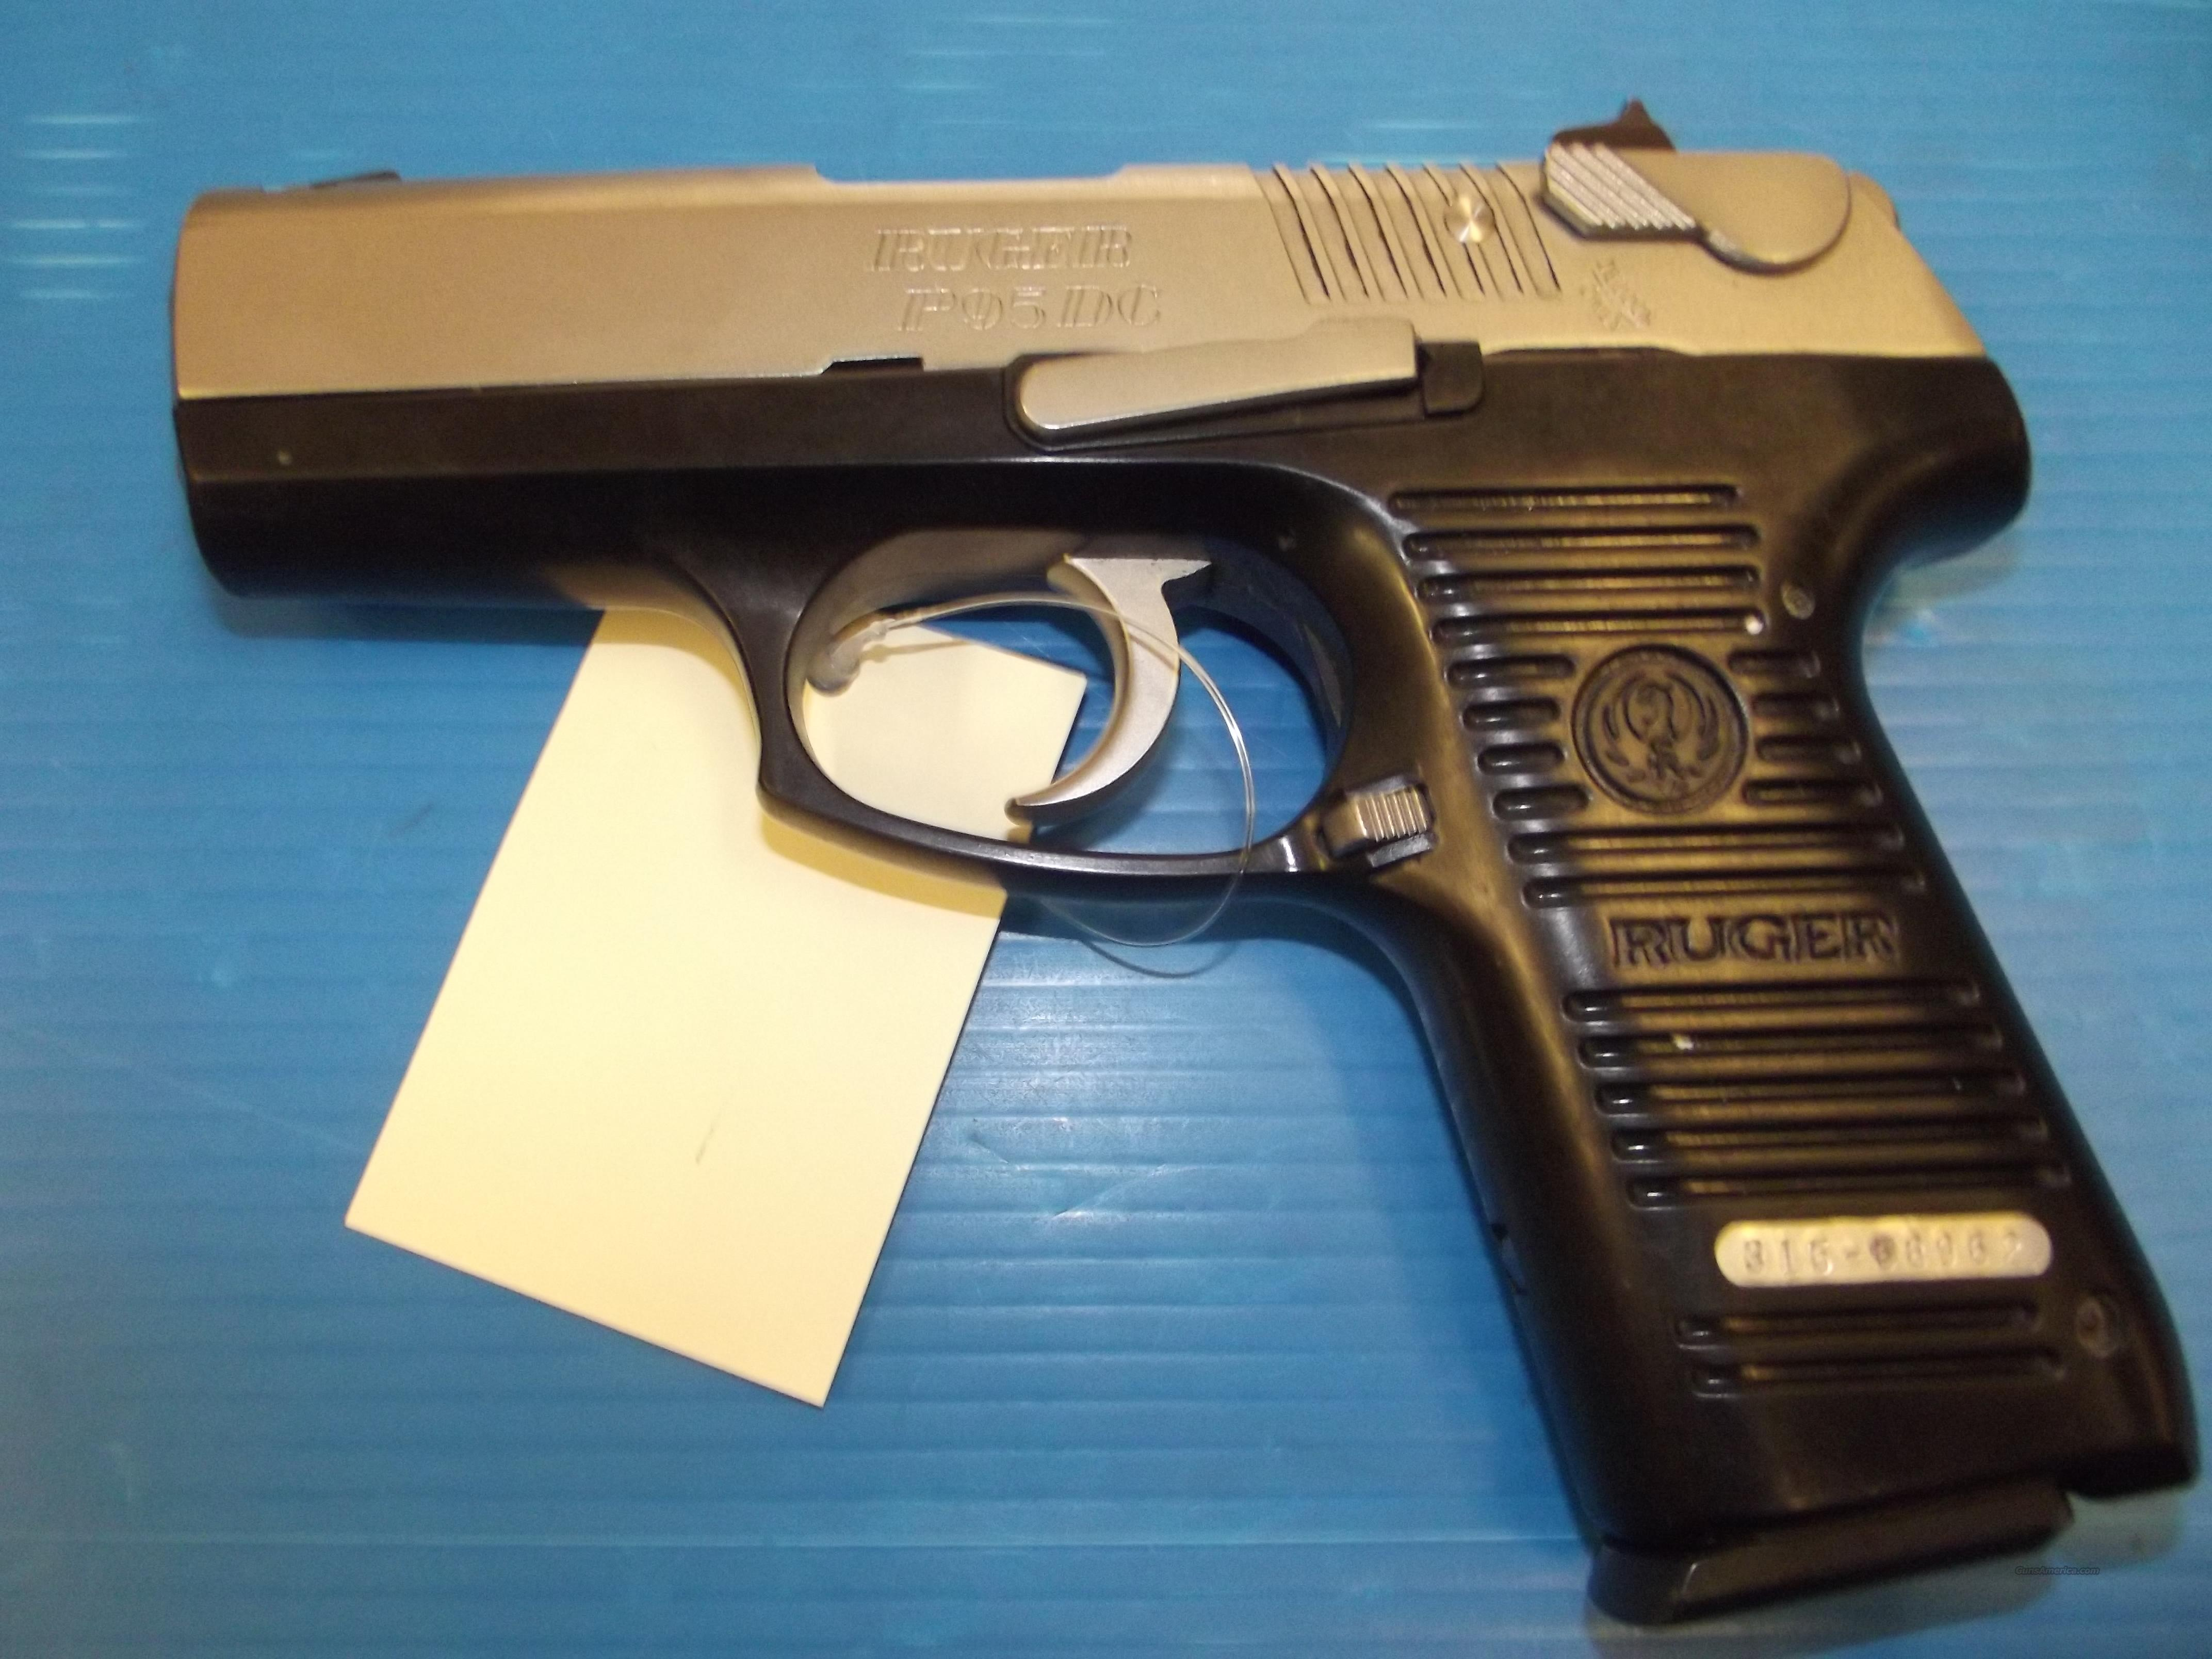 RUGER P95DC WW-21-9  Guns > Pistols > Ruger Semi-Auto Pistols > P-Series